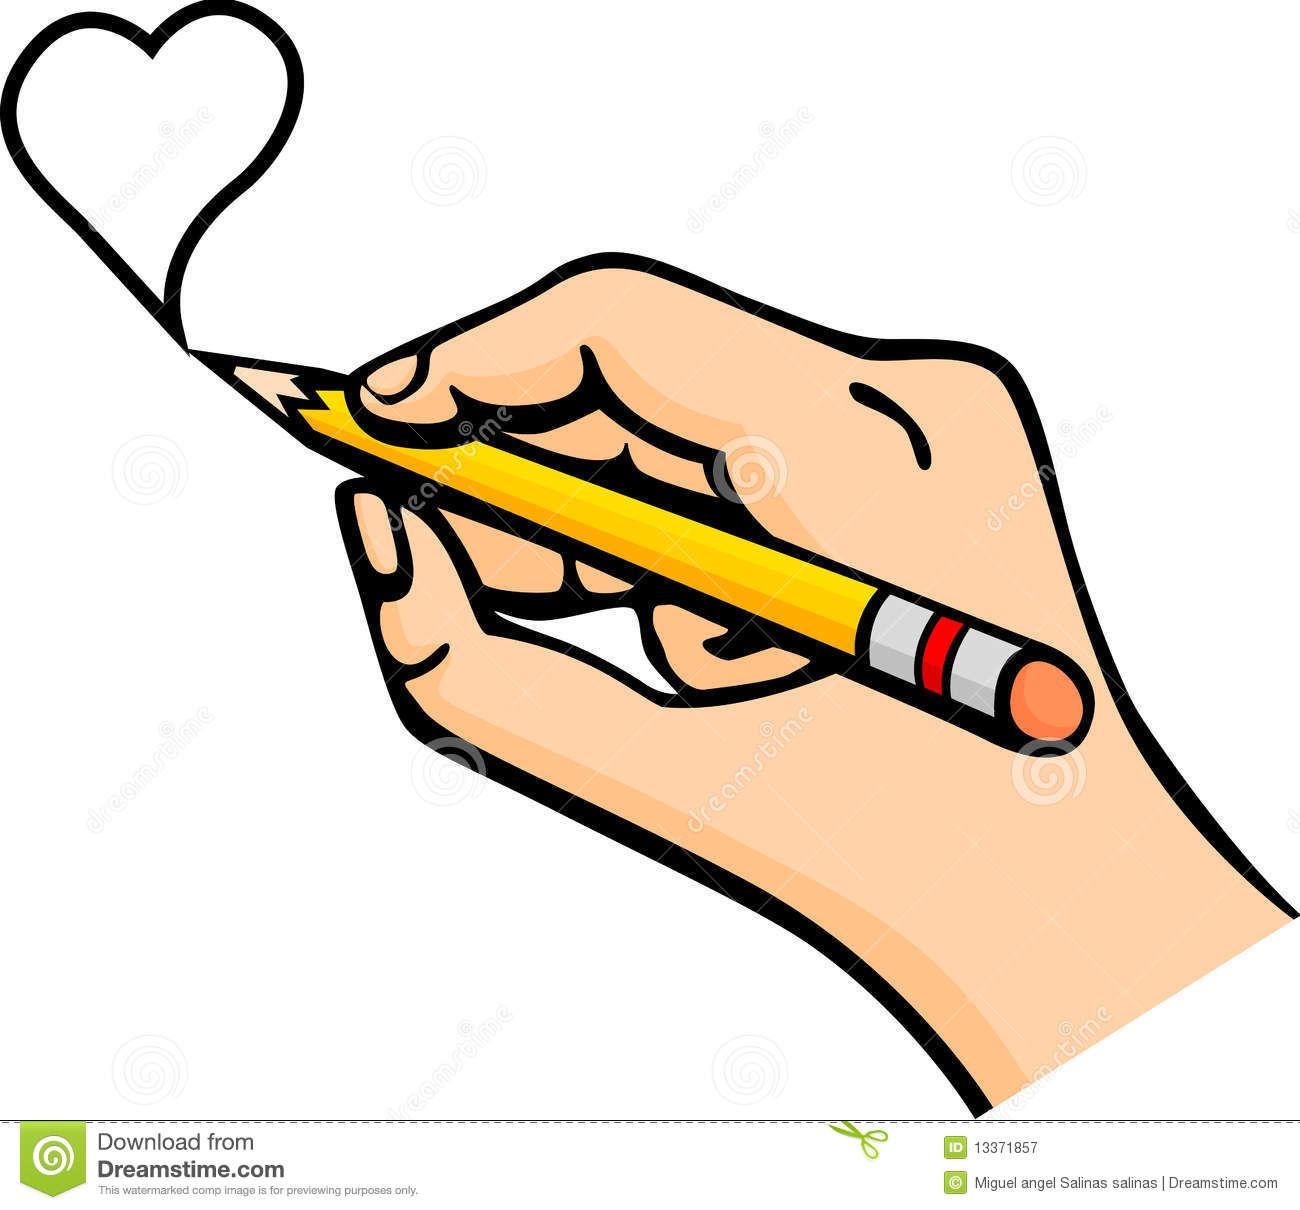 Pencil In Hand Clipart Clipart Suggest